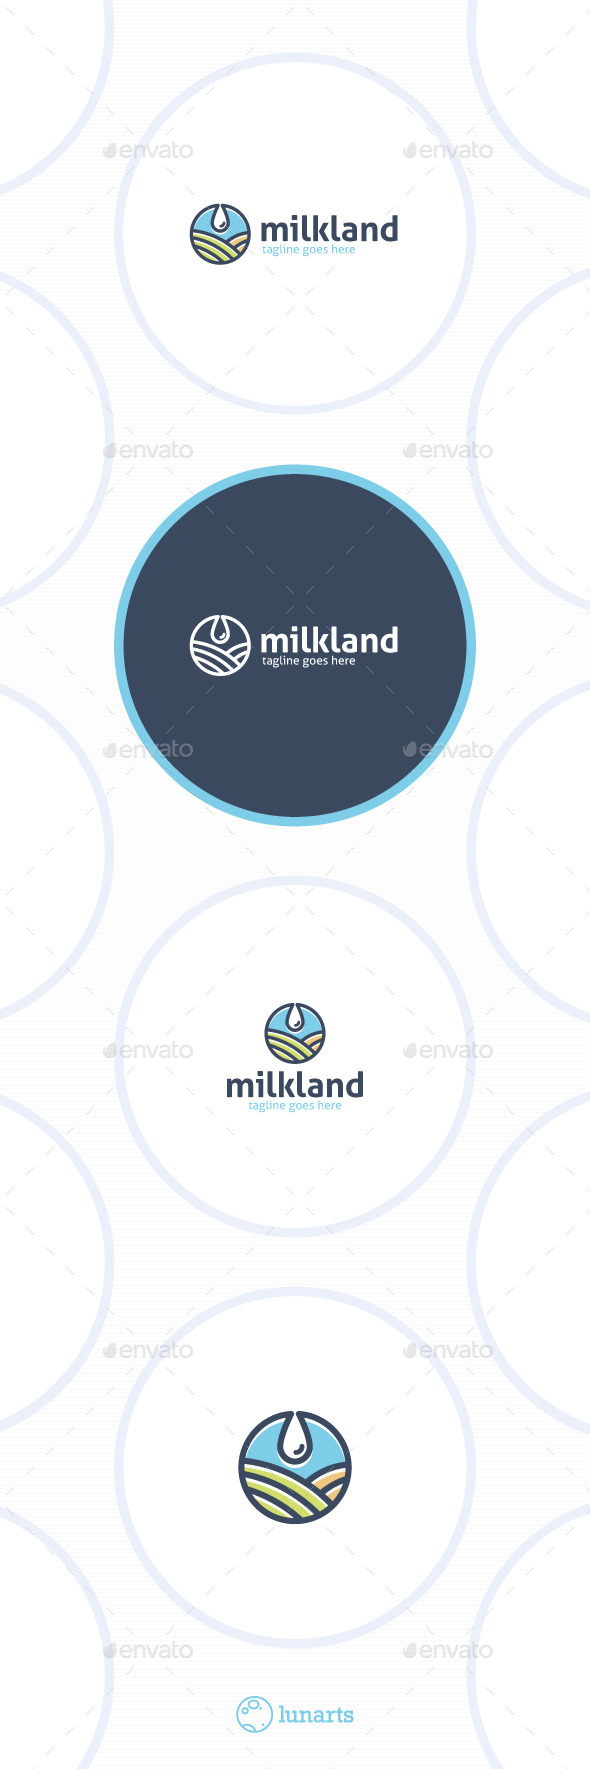 Milk Land Logo - Drop Field - Nature Logo Templates